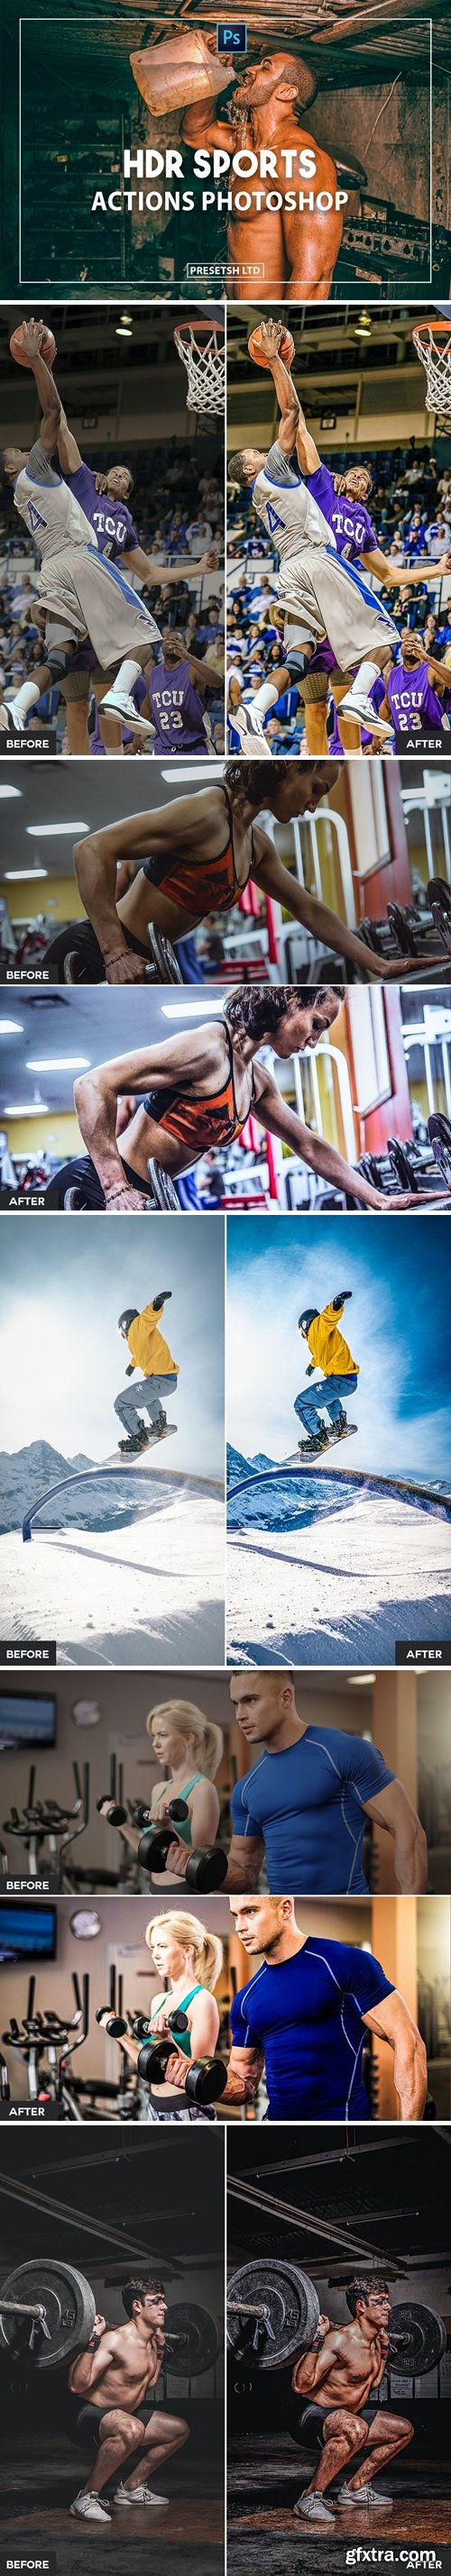 Sports Photoshop Actions